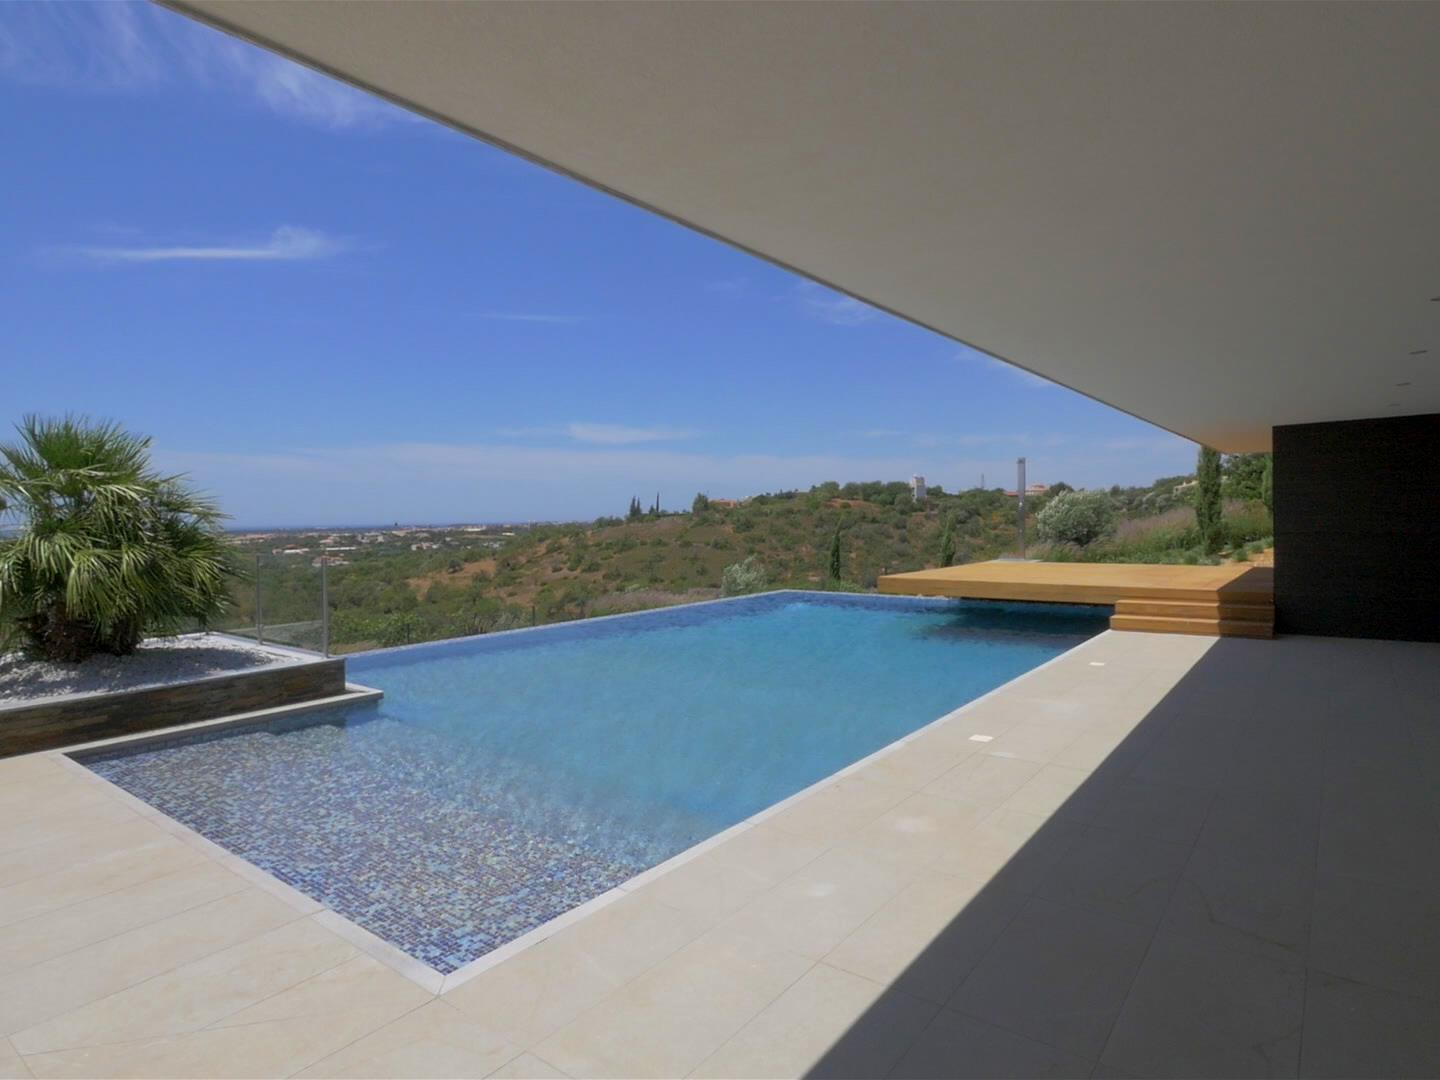 Tek Ailelik Ev için Satış at Detached house, 4 bedrooms, for Sale Loule, Algarve Portekiz